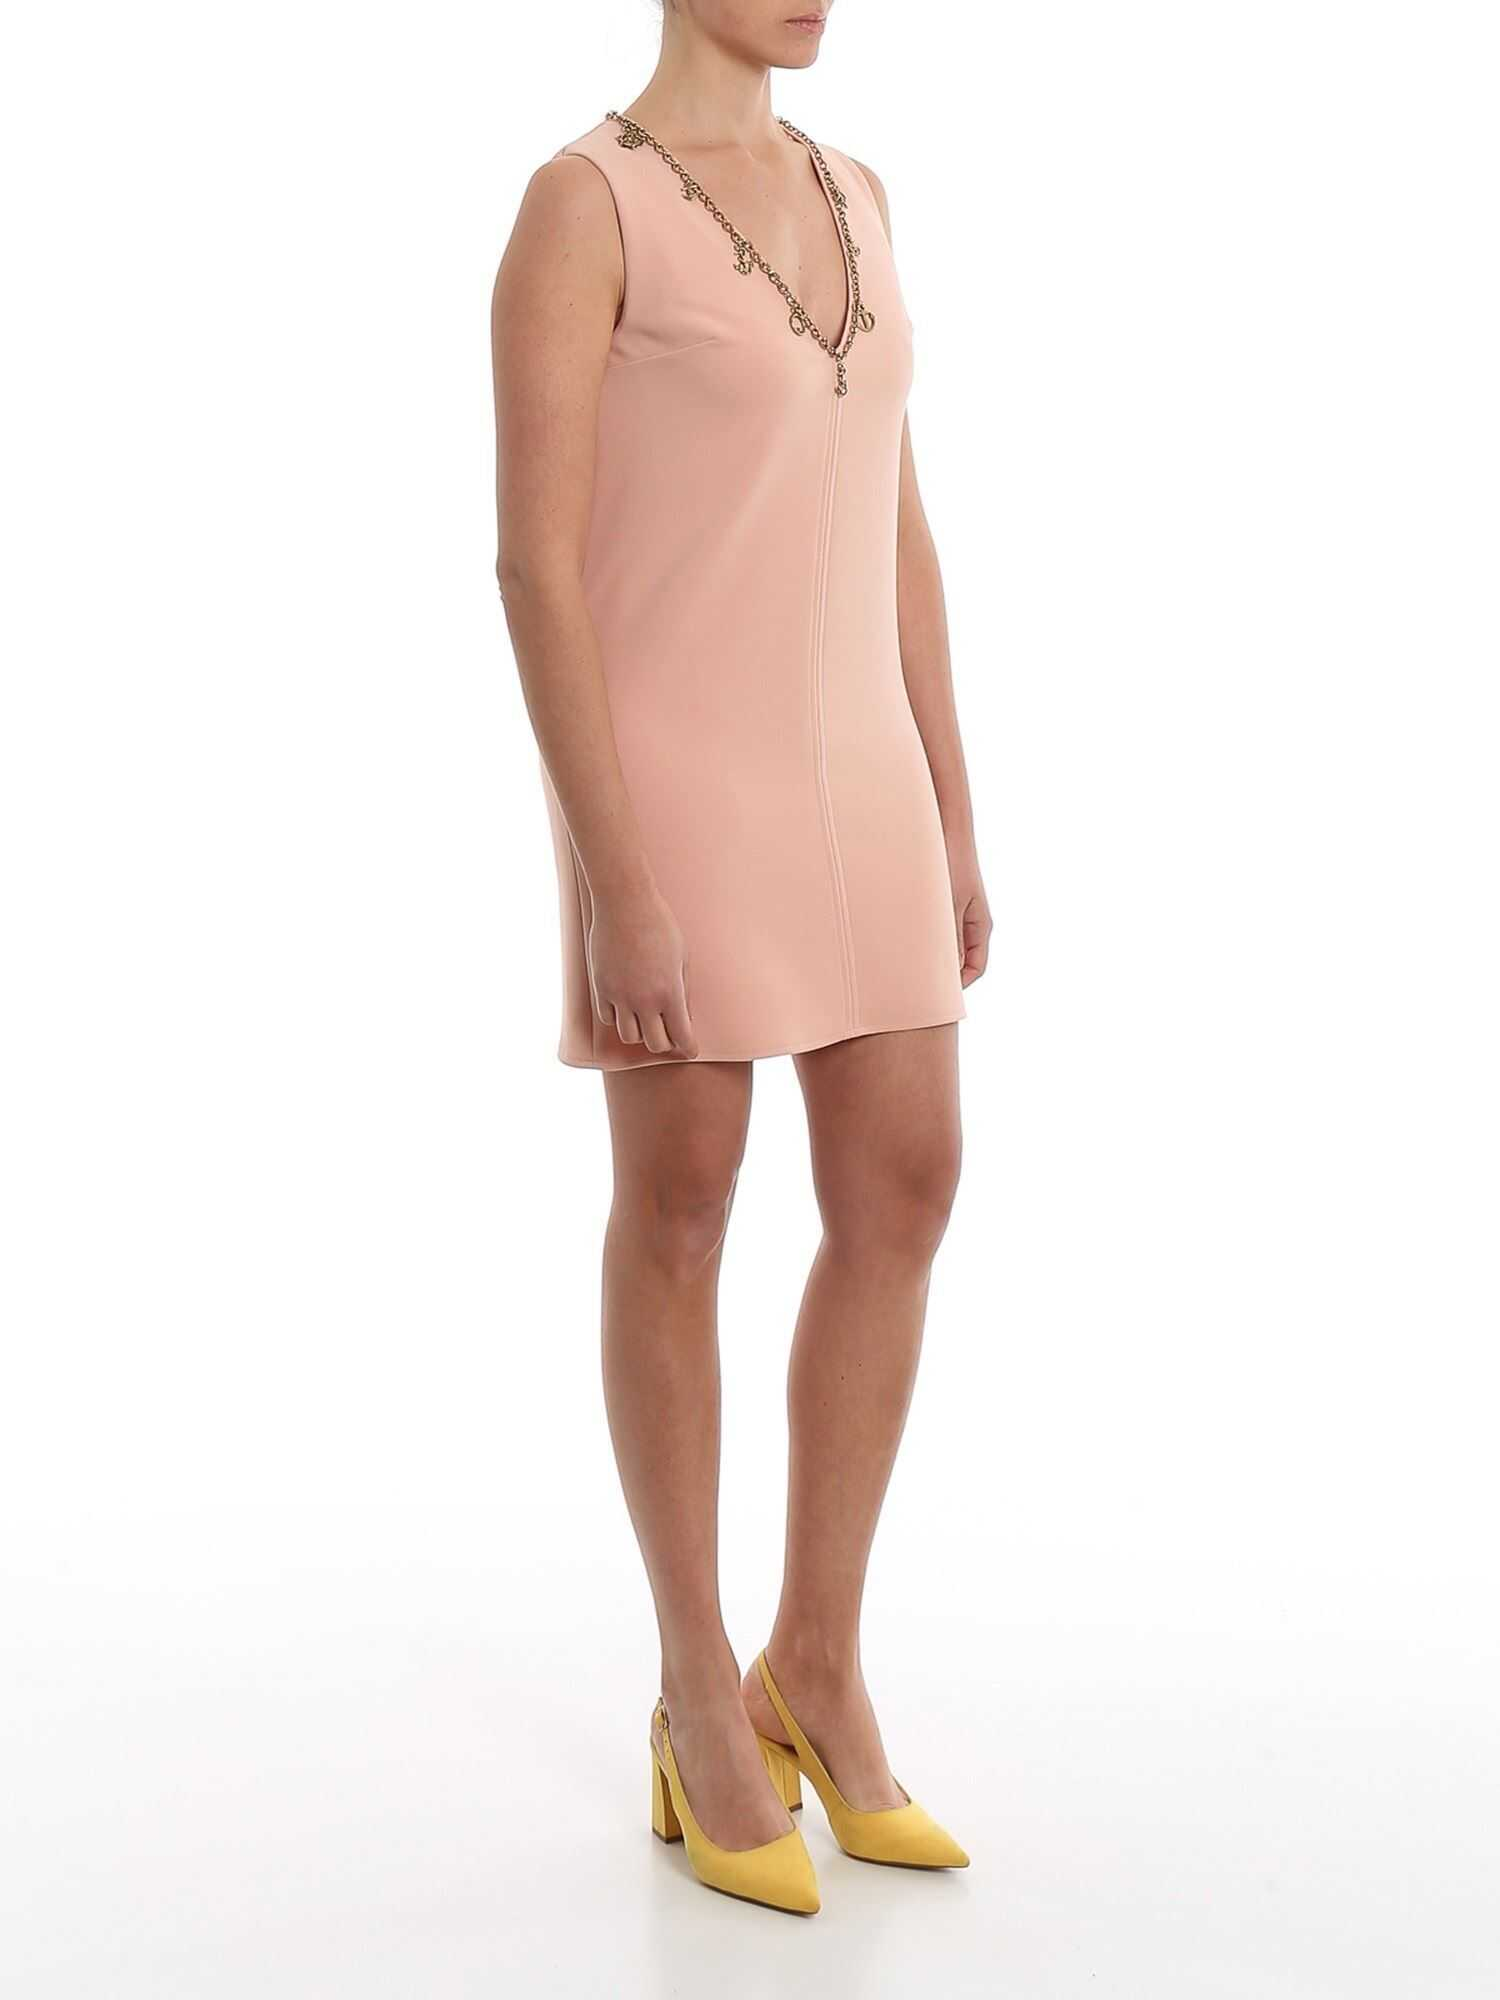 Elisabetta Franchi Chain Embellished Powder Pink Mini Dress Pink